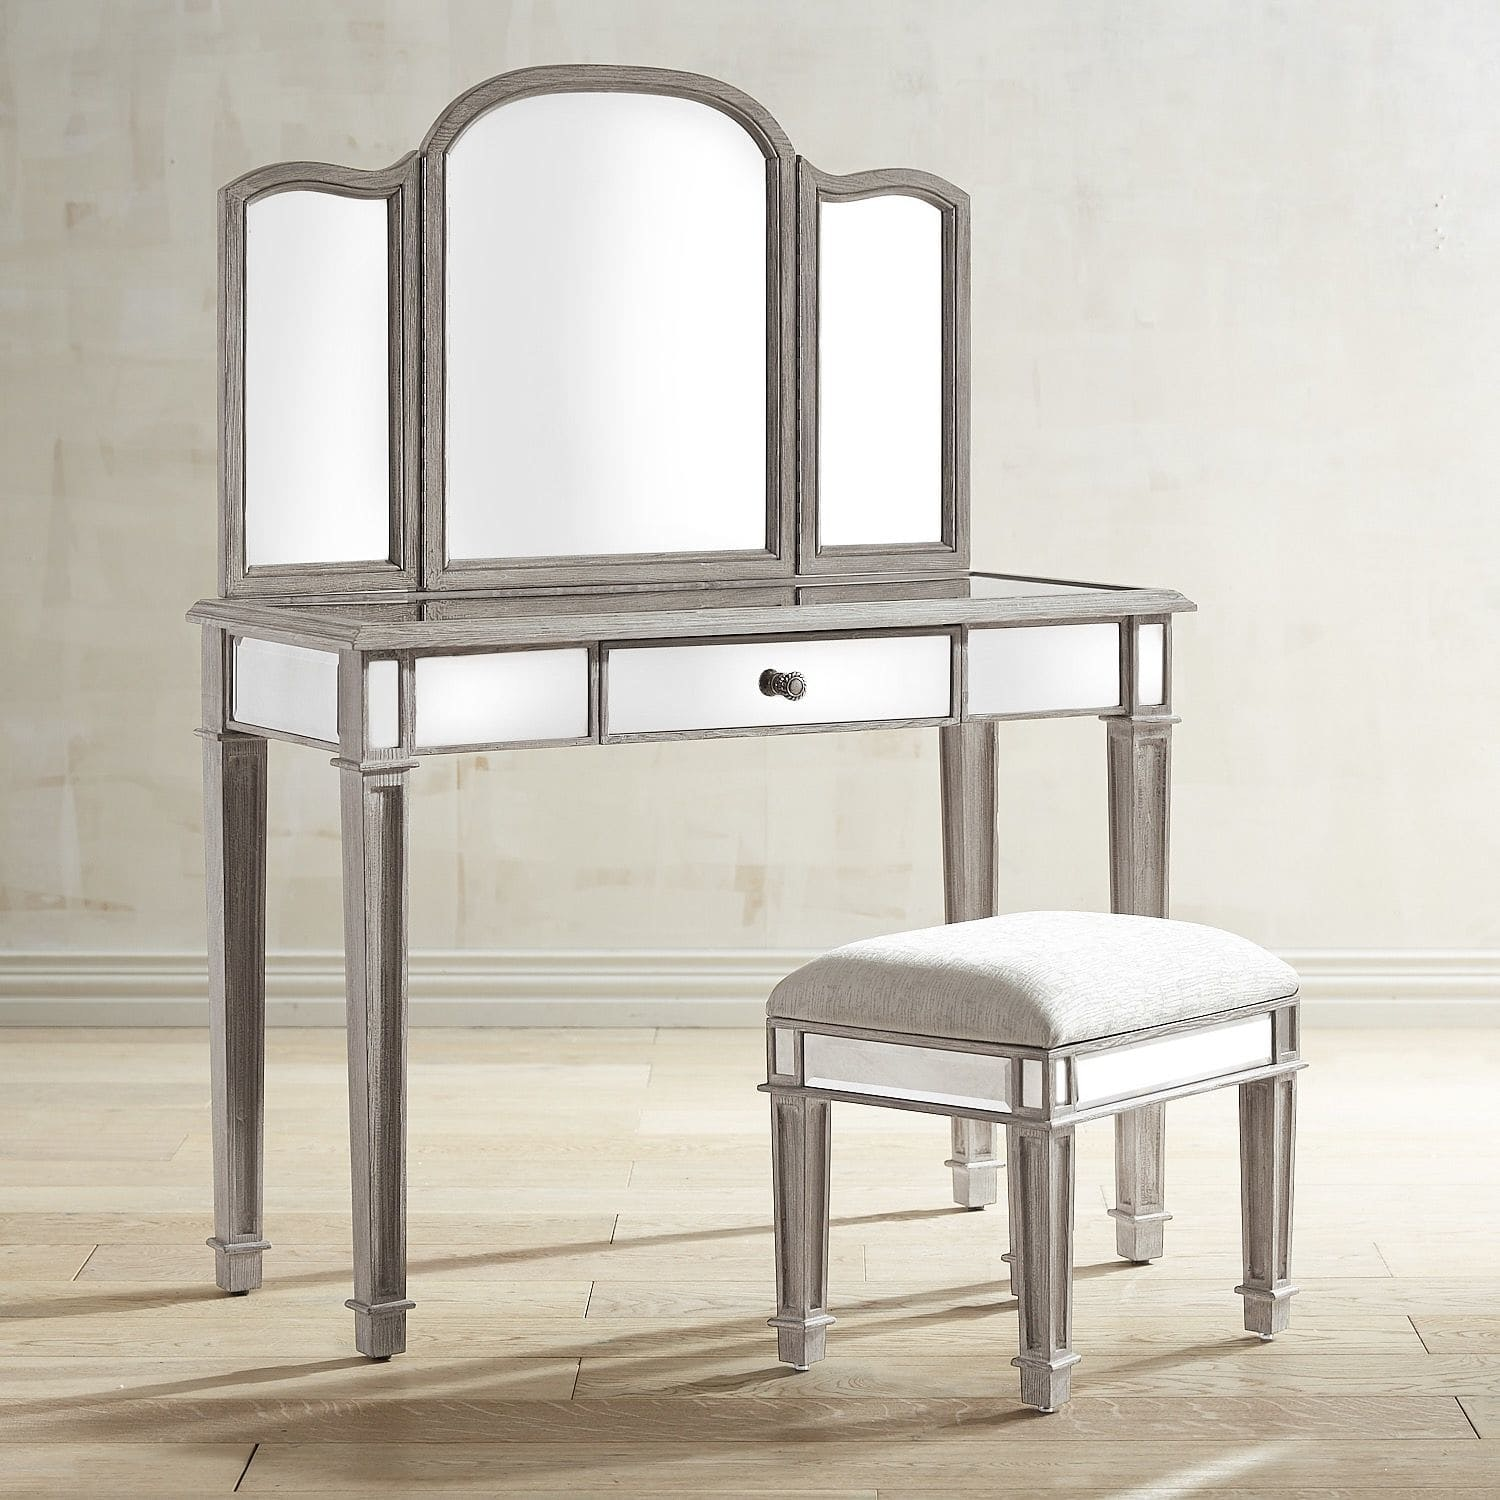 Makeup Vanity Table Set with Mirror | Bathroom Vanity Sets with Mirror | Mirrored Vanity Set